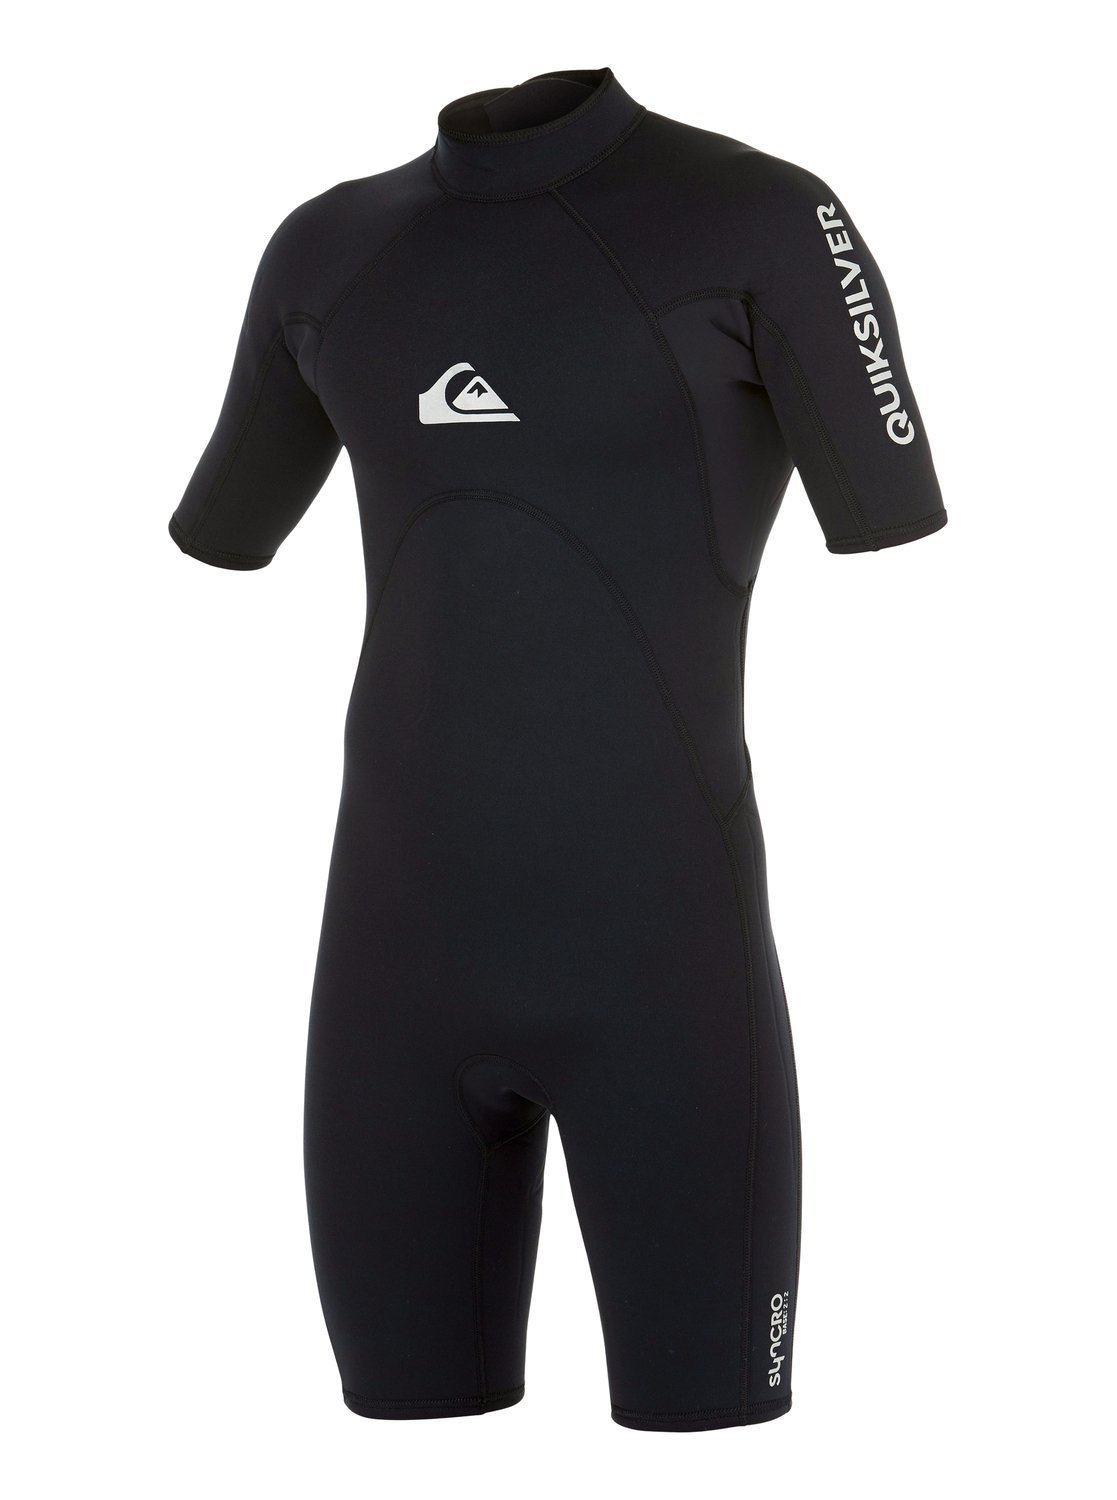 QUIKSILVER SYNCRO BASE WETSUIT